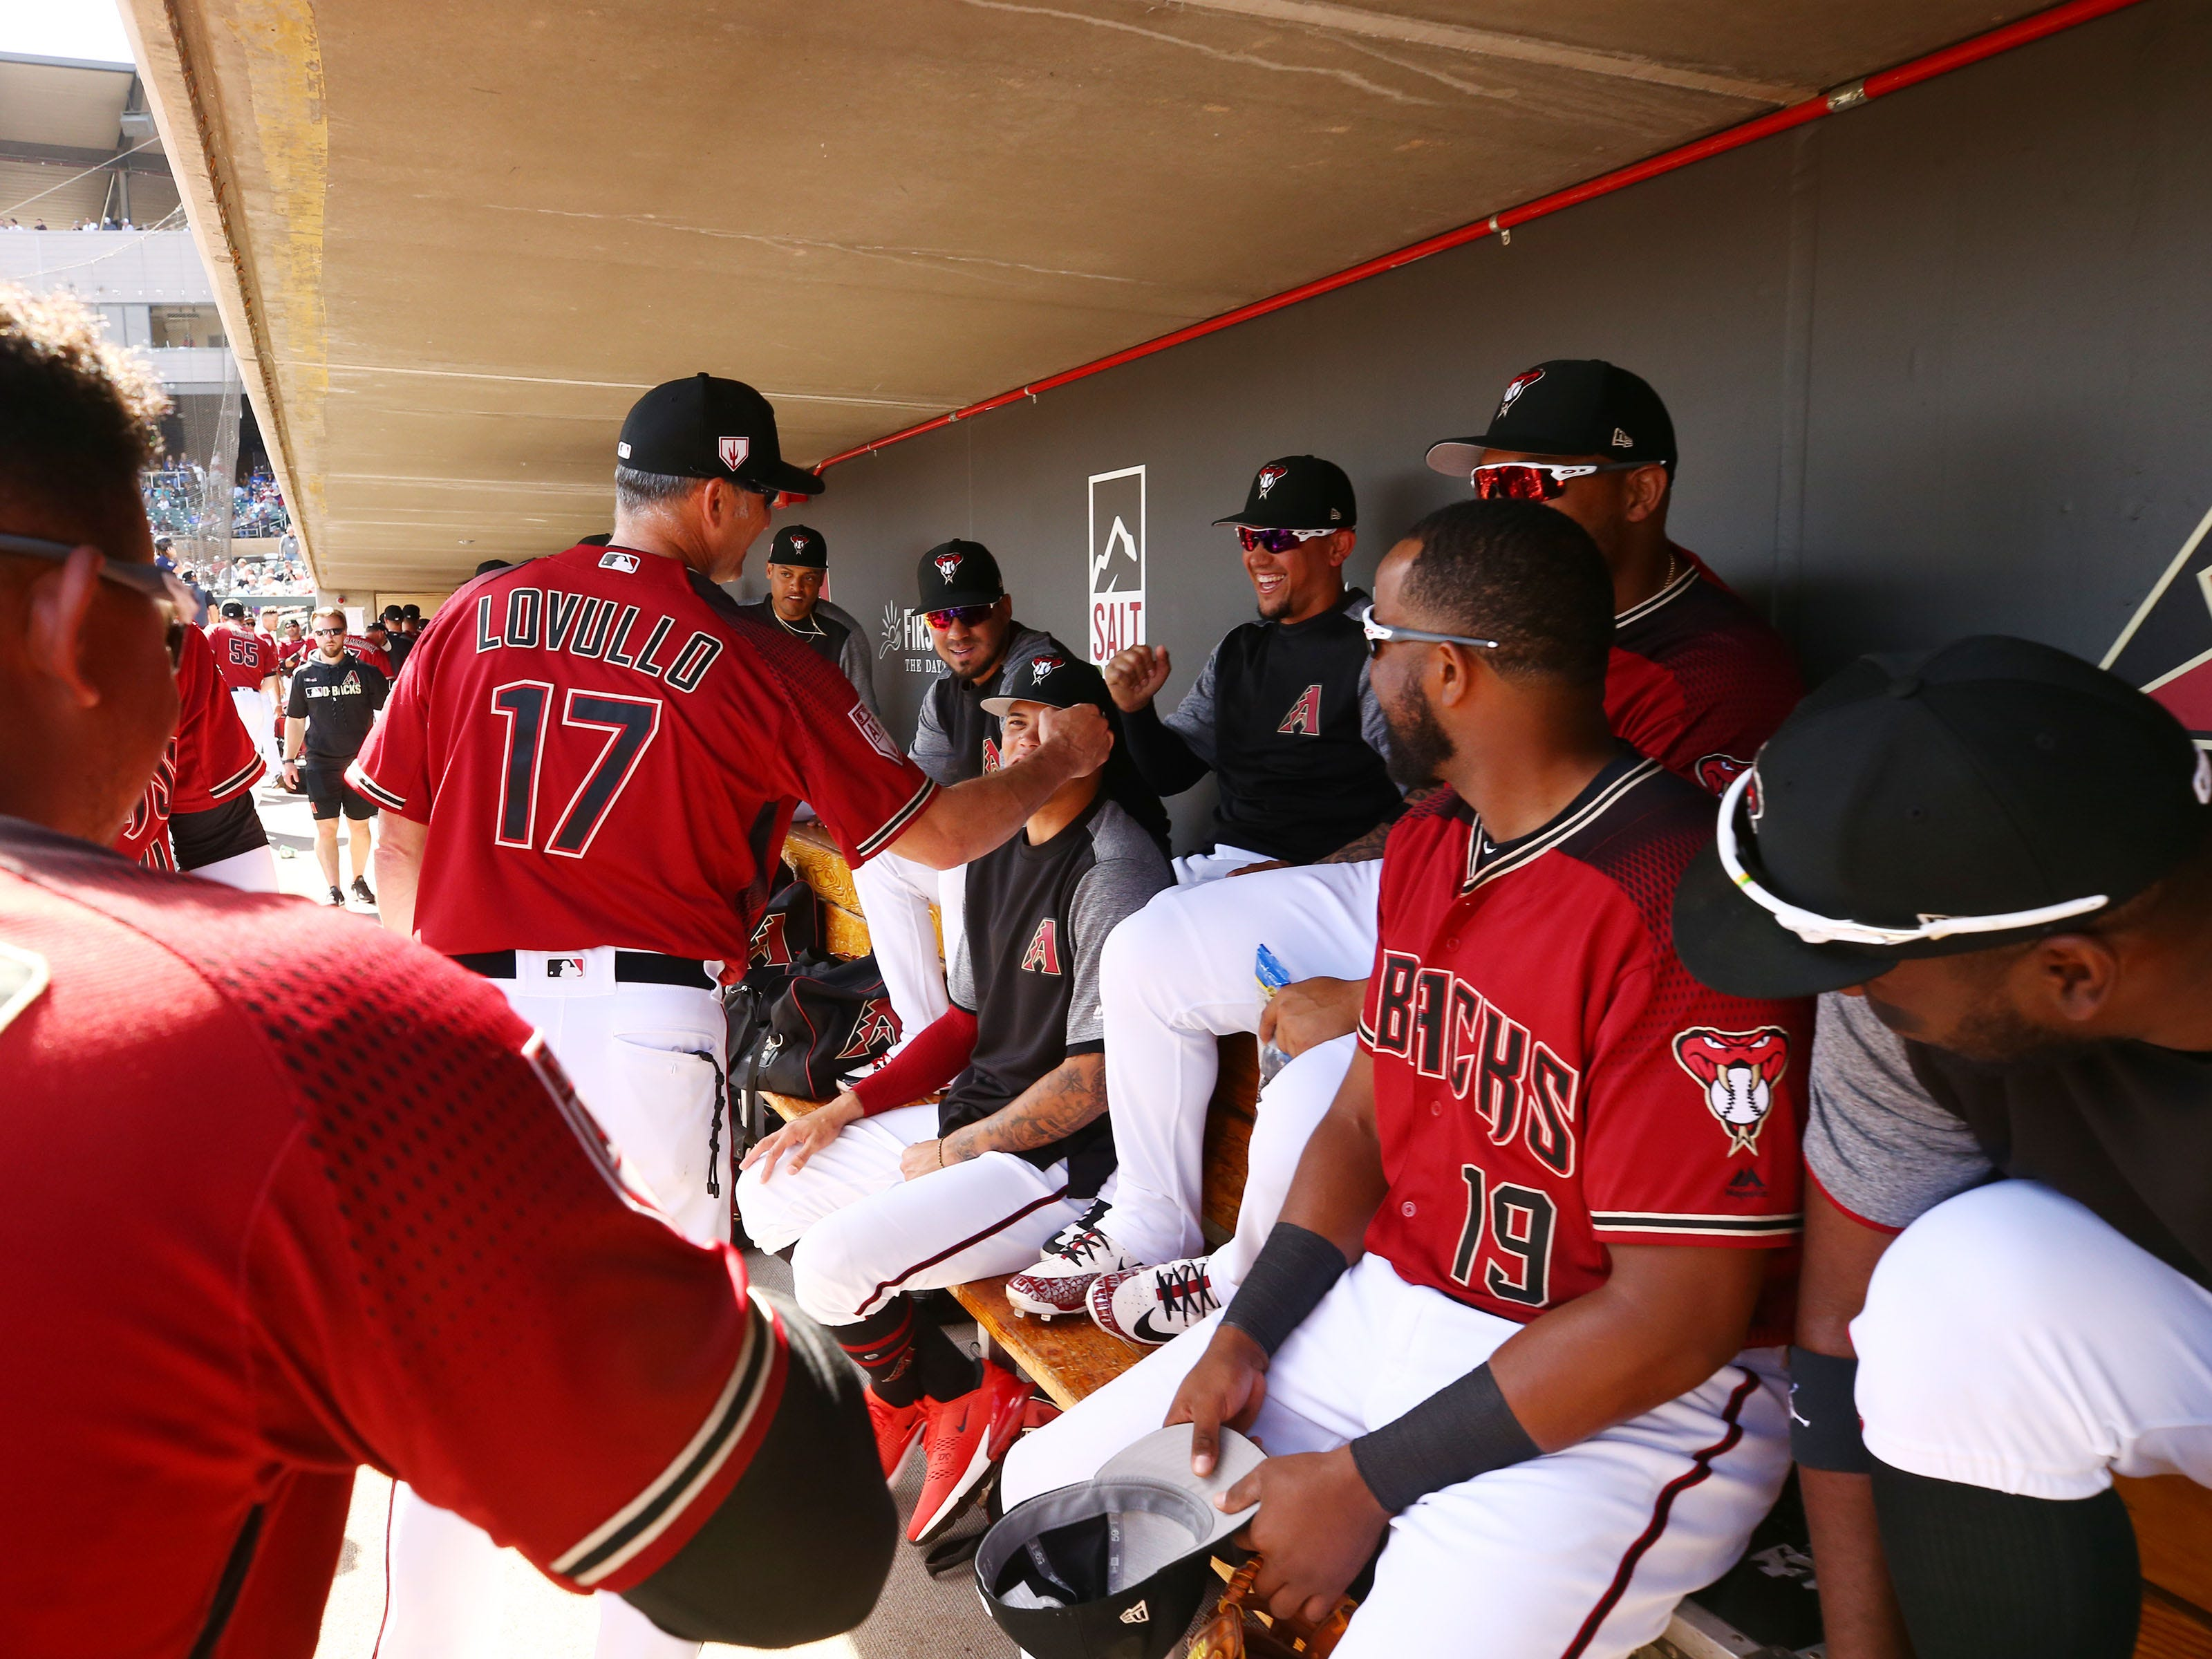 Arizona Diamondbacks manager Torey Lovullo makes the rounds with his players against the Chicago Cubs during a spring training game on Mar. 1, 2019 at Salt River Fields in Scottsdale, Ariz.